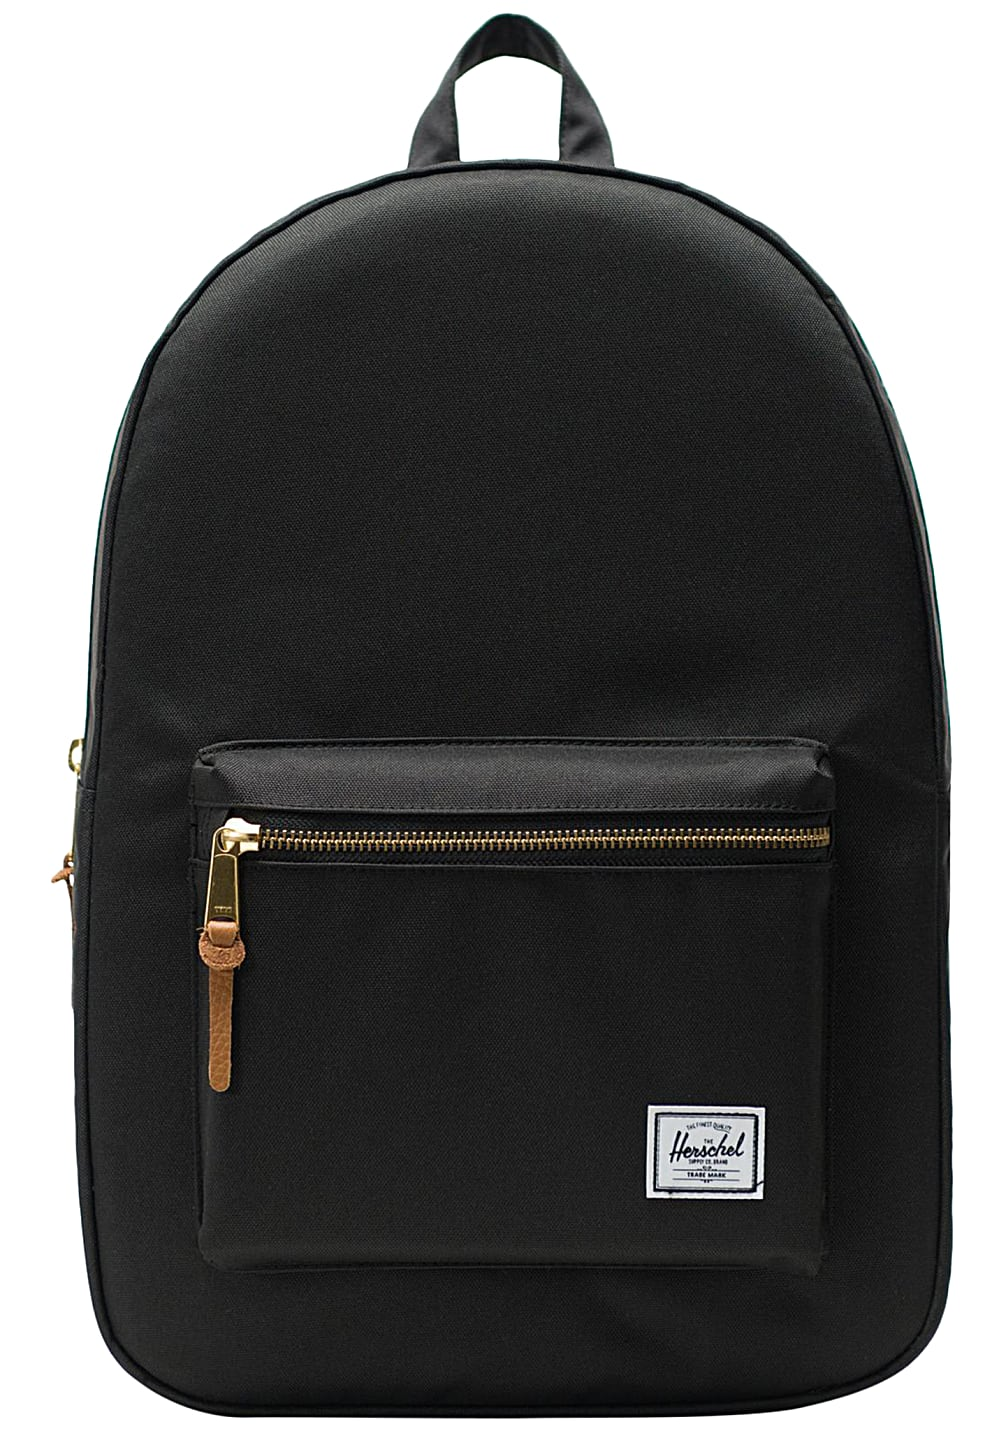 Noir Settlement Dos Sac À Supply 23l Co Herschel Aq45RjL3